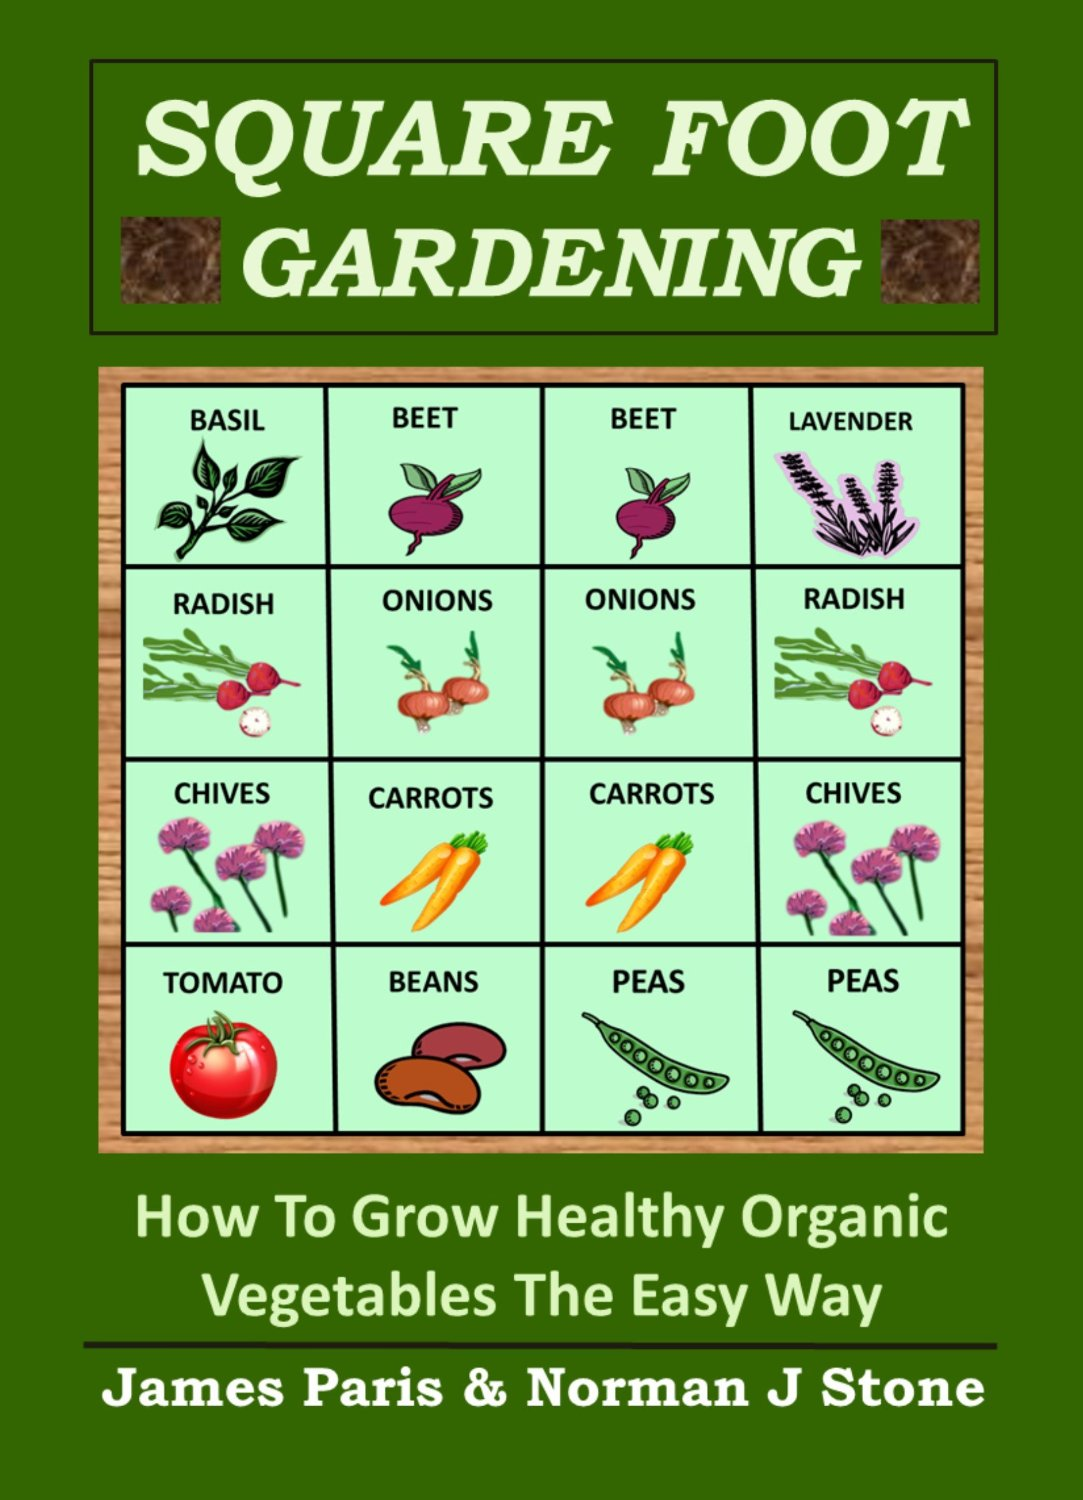 Square Foot Gardening: How To Grow Healthy Organic Vegetables The Easy Way free download